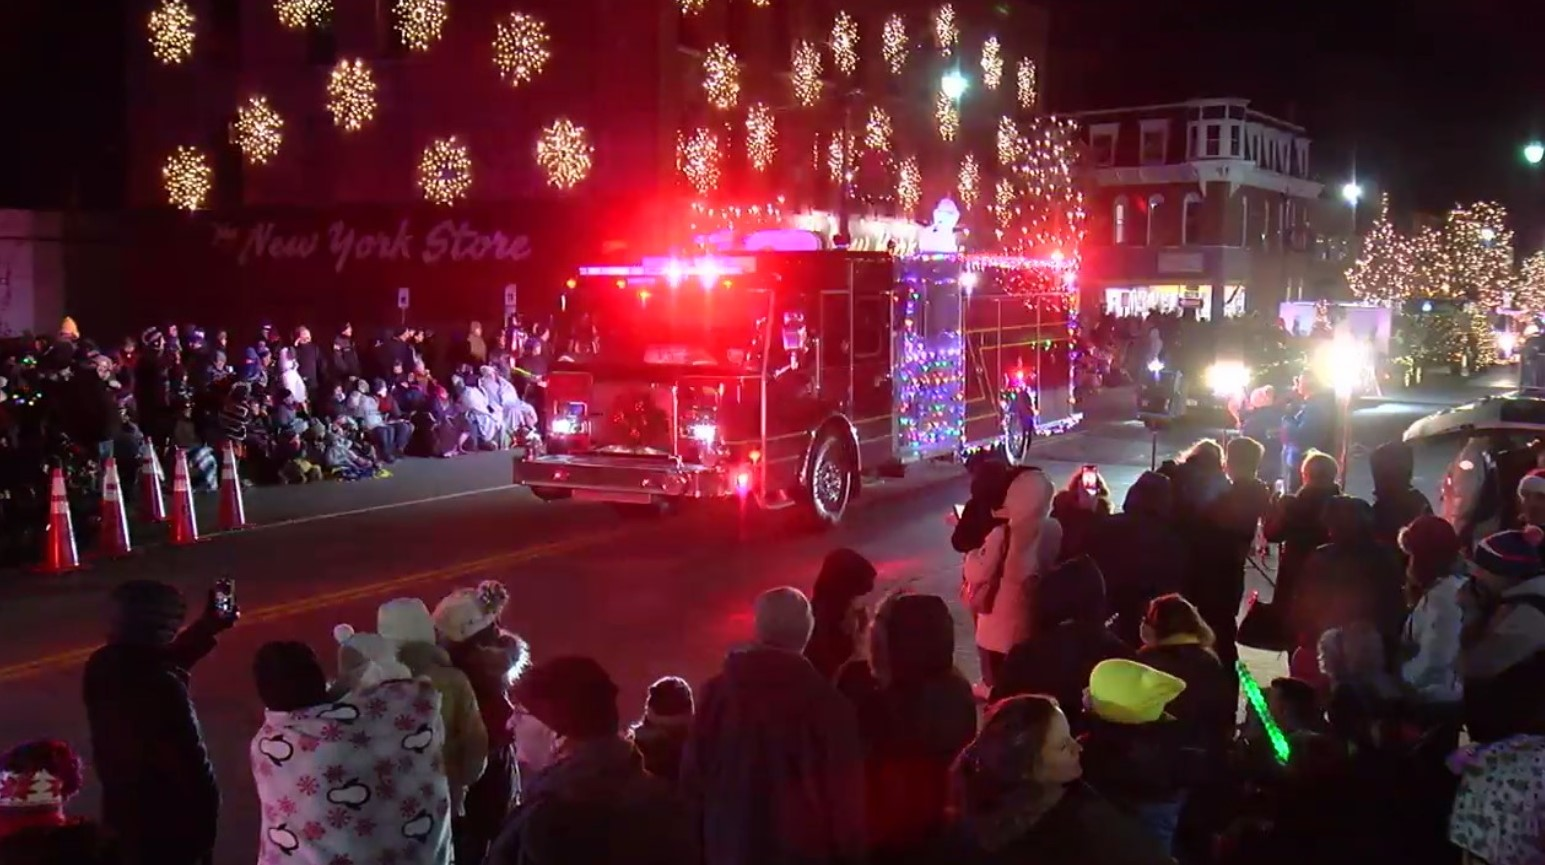 Lancaster Christmas Parade 2020 Lancaster Christmasville Firetruck Parade canceled in 2020 due to